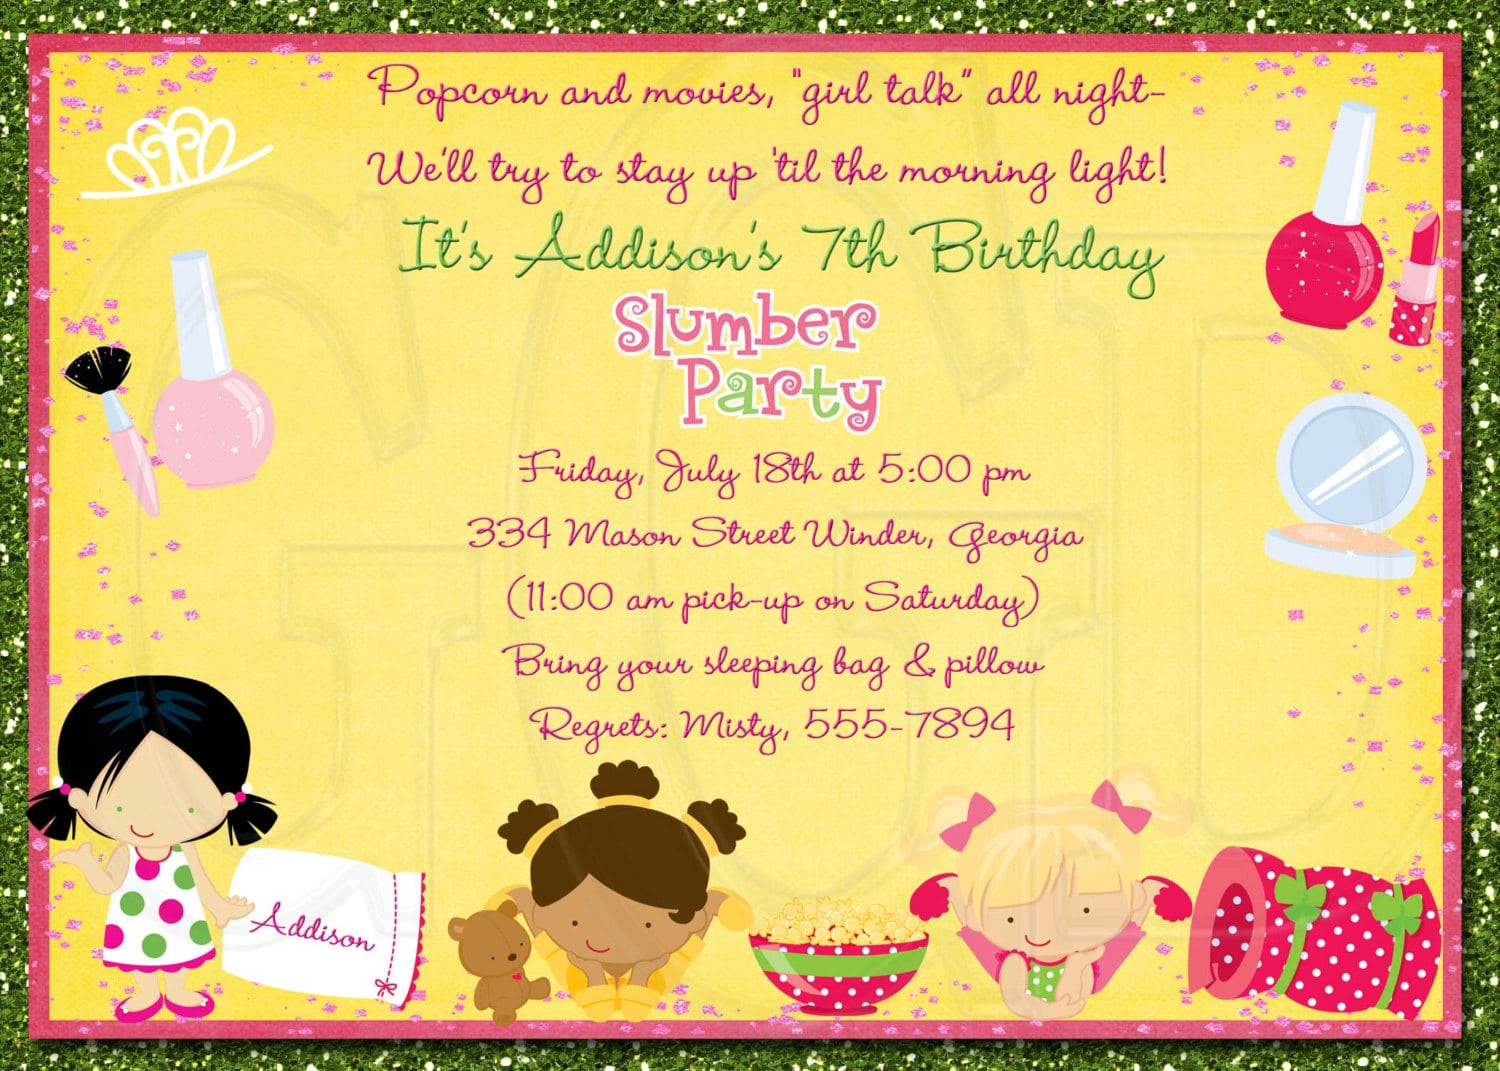 Slumber Or Pajama Party Invitation Designed By Graciegirldesigns77